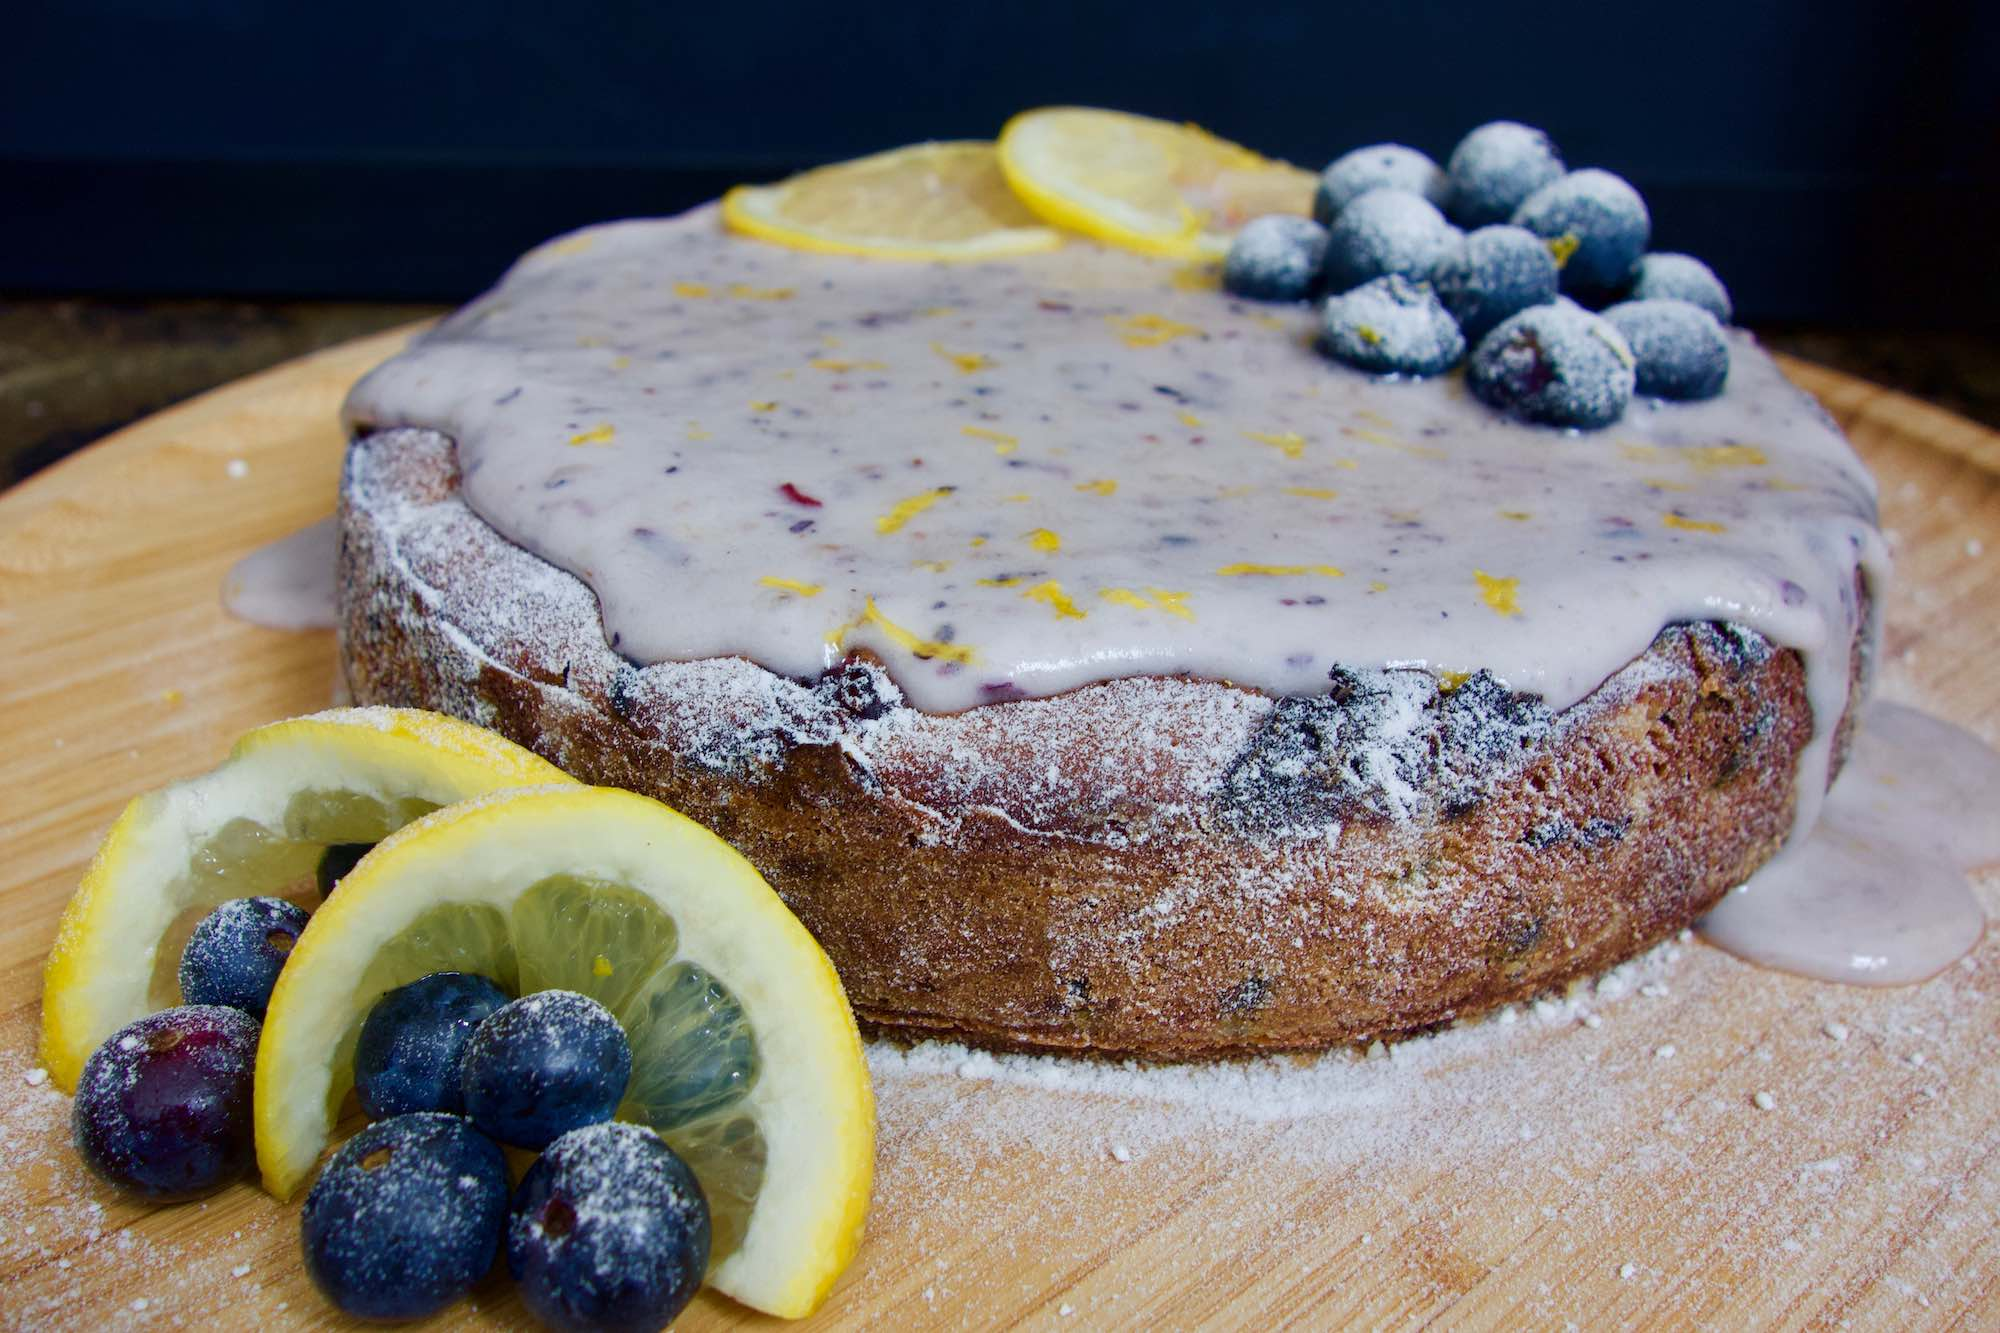 Vegan Lemon and Blueberry Cake